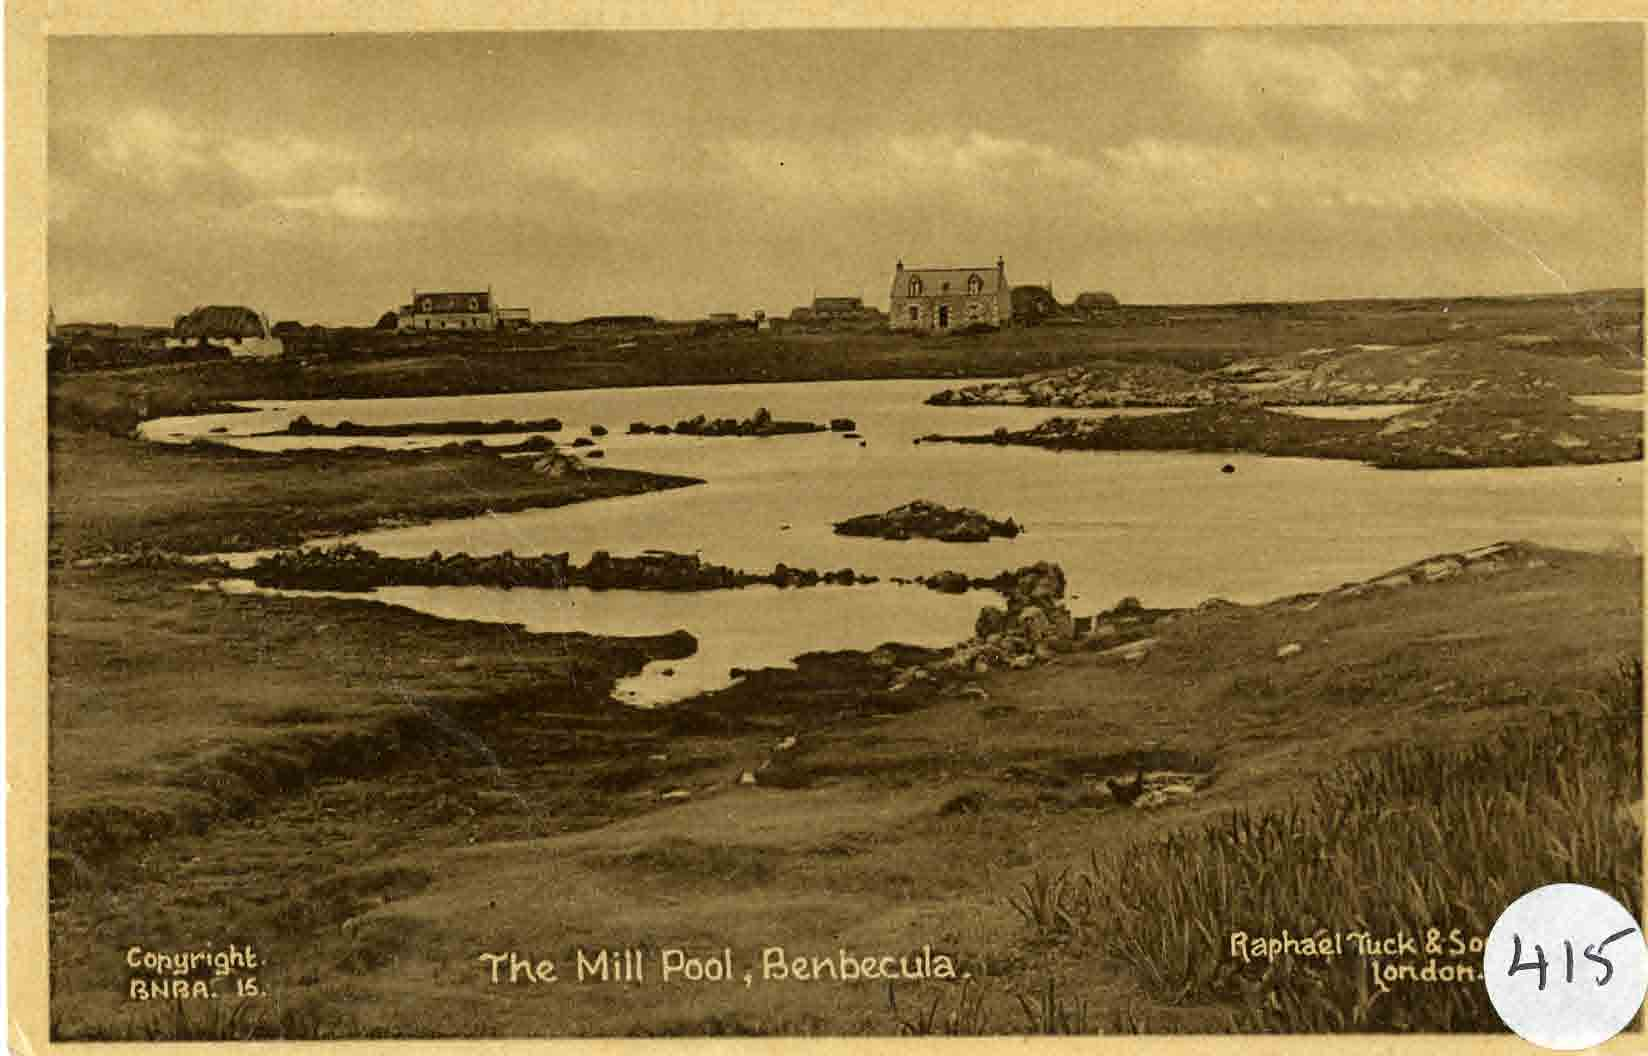 The mill pool on Benbecula